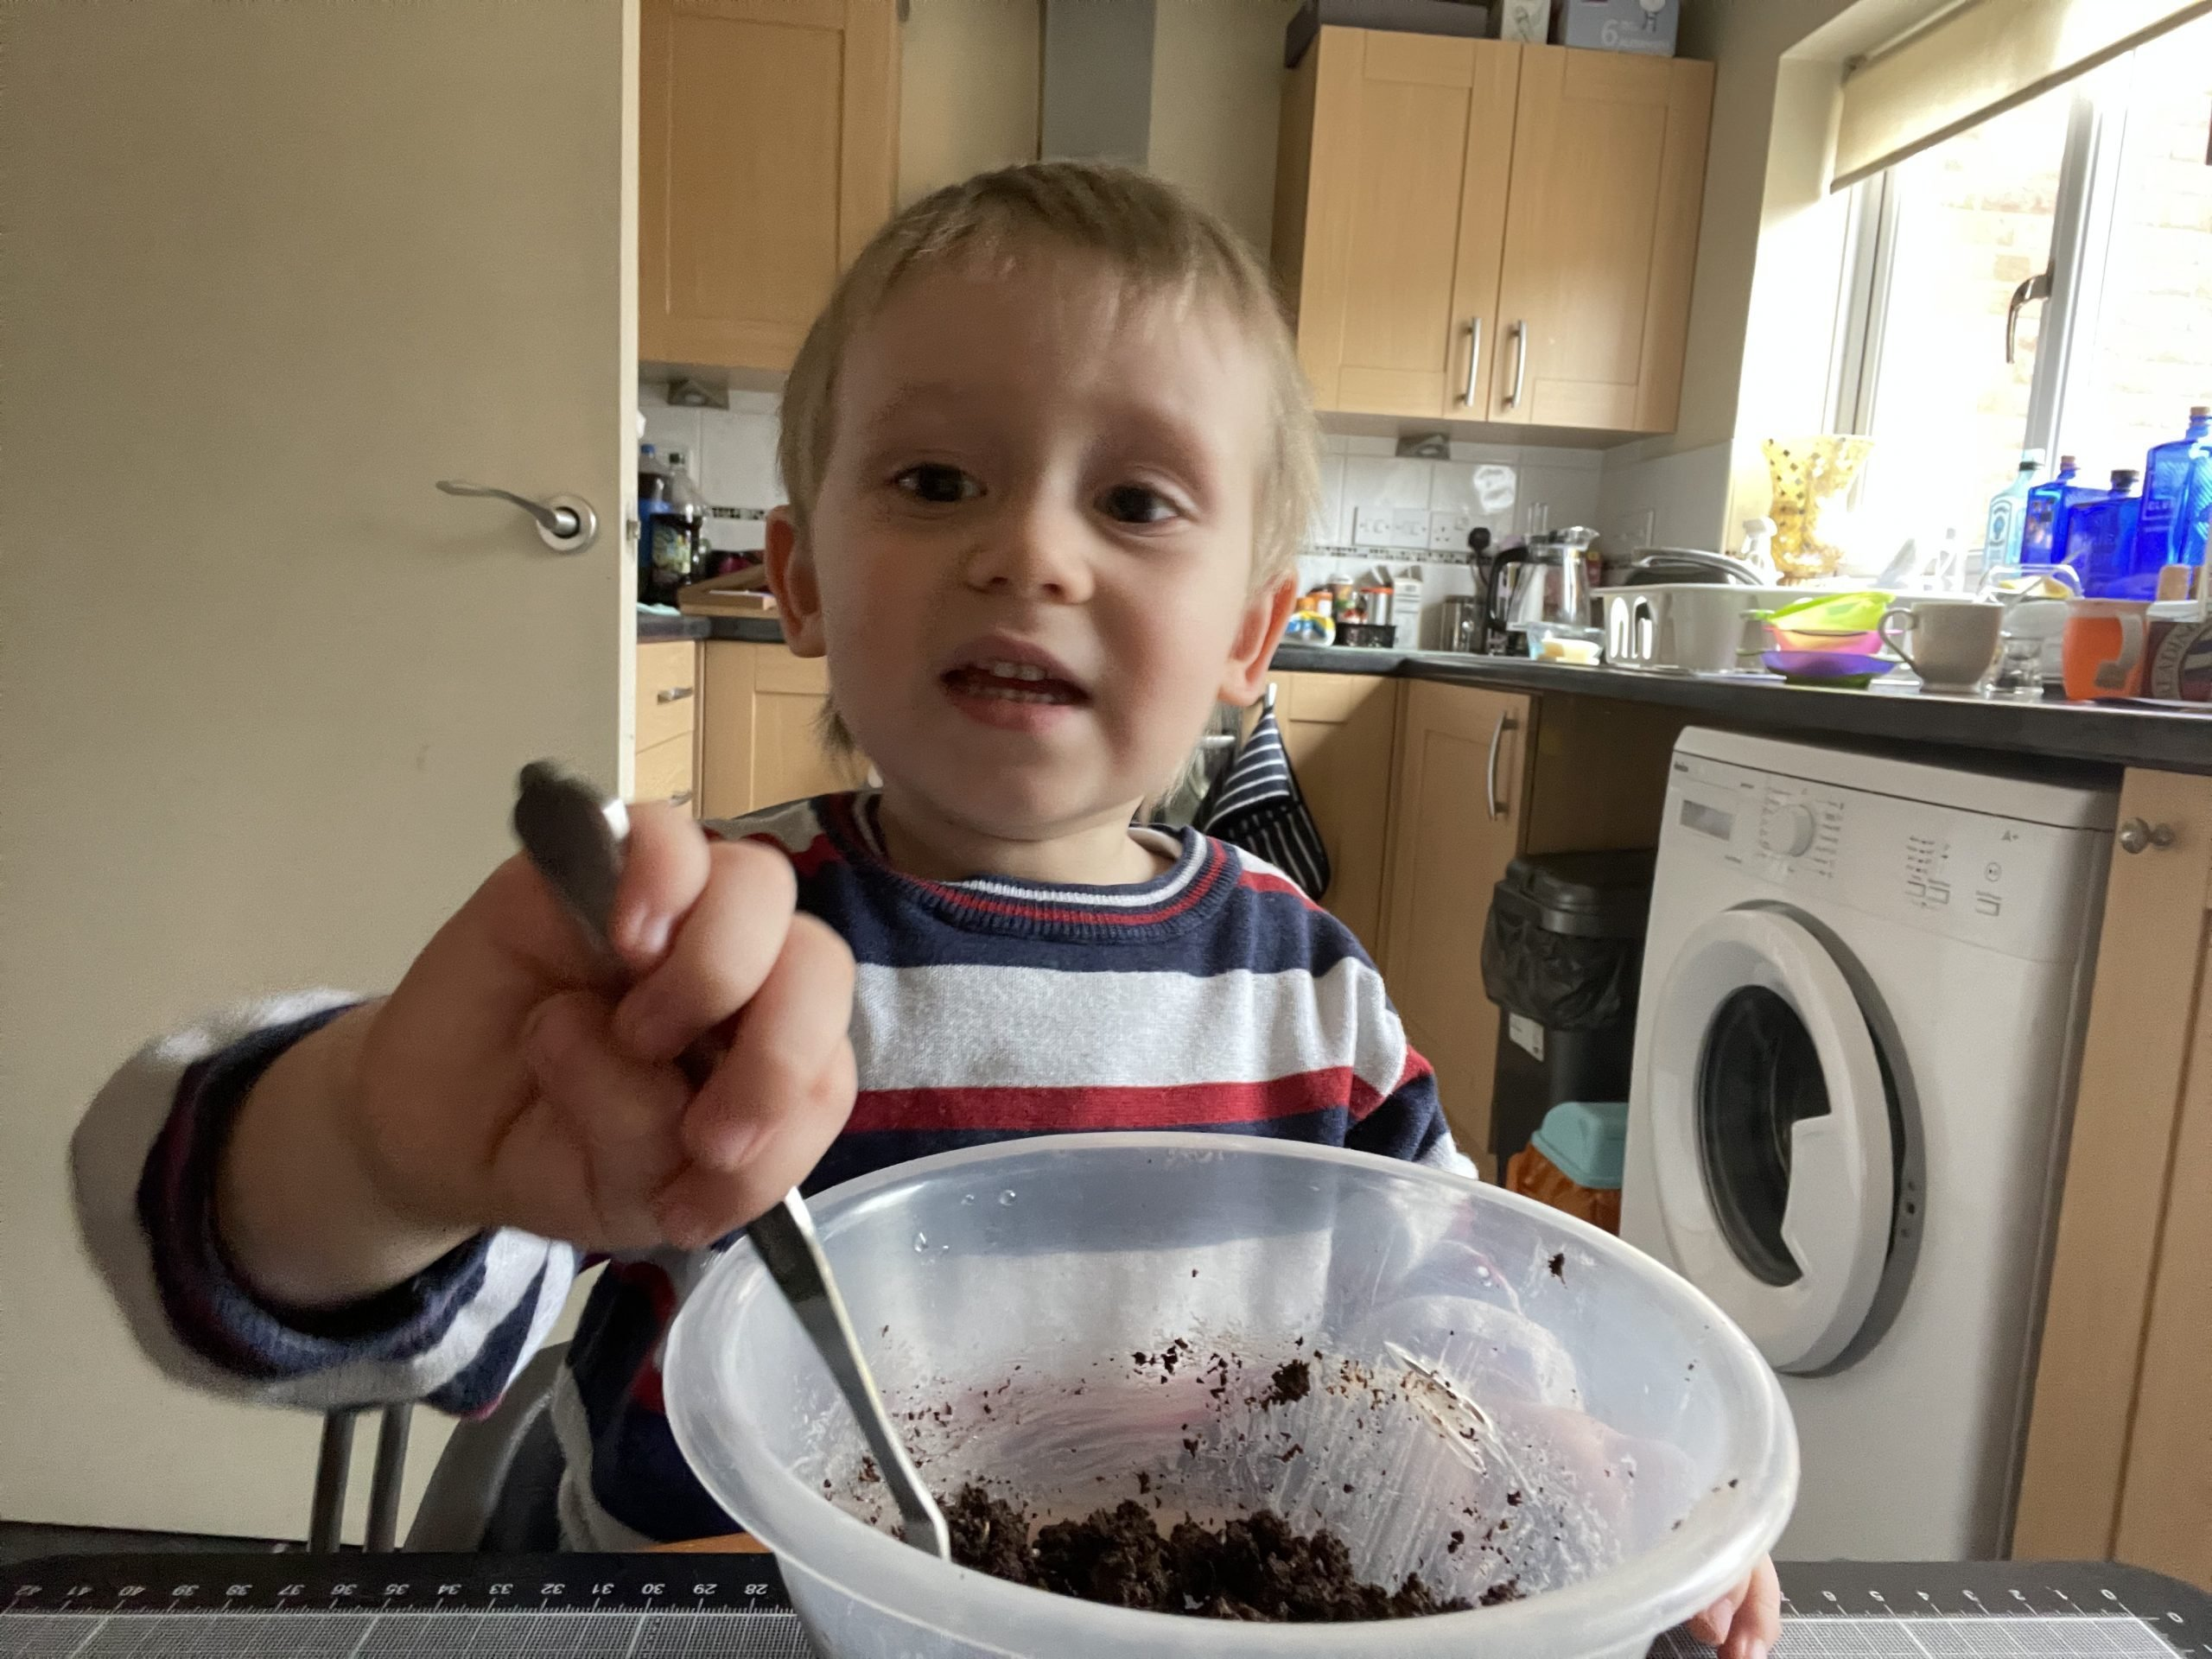 Little J is wearing a white, red and blue jumper. He is sat at a table with a bowl in front of him. There is compost and clay in the bowl and he is stirring it with a metal spoon. He is smiling at the camera